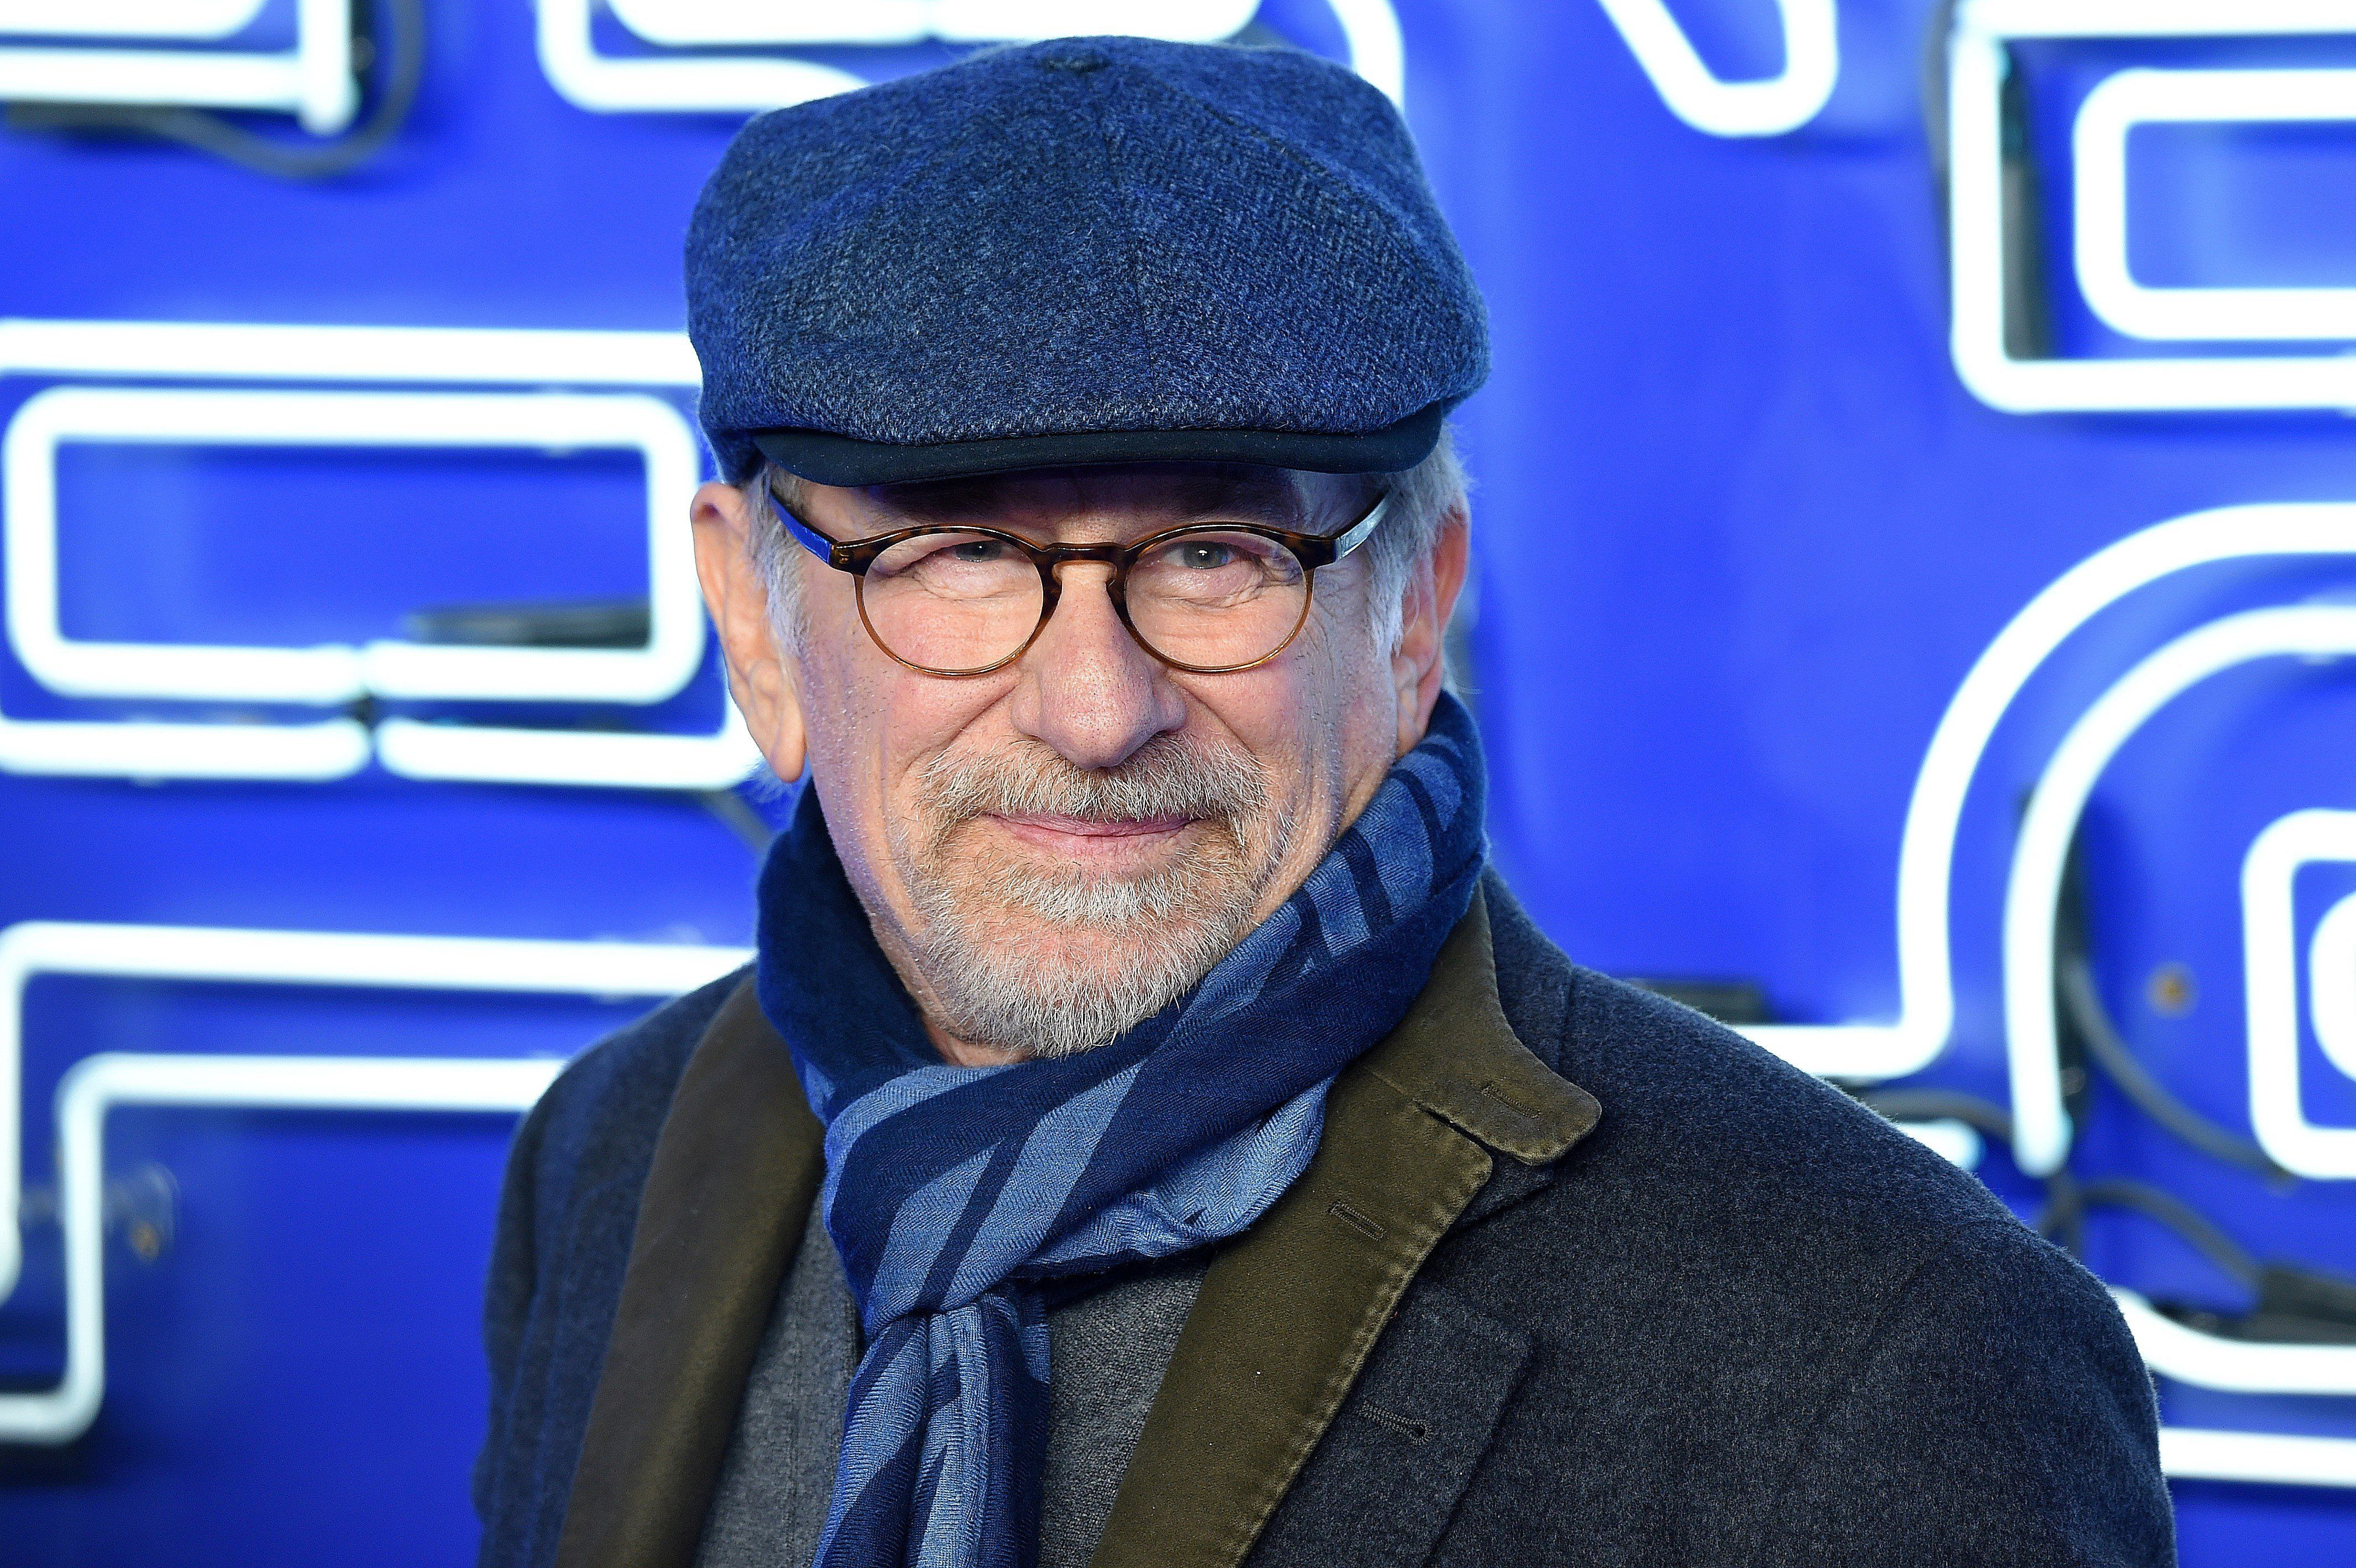 US film director Steven Spielberg poses on the red carpet upon arrival to attend the European premiere of the film 'Ready Player One' in London on March 19, 2018. / AFP PHOTO / Anthony HARVEY        (Photo credit should read ANTHONY HARVEY/AFP/Getty Images)